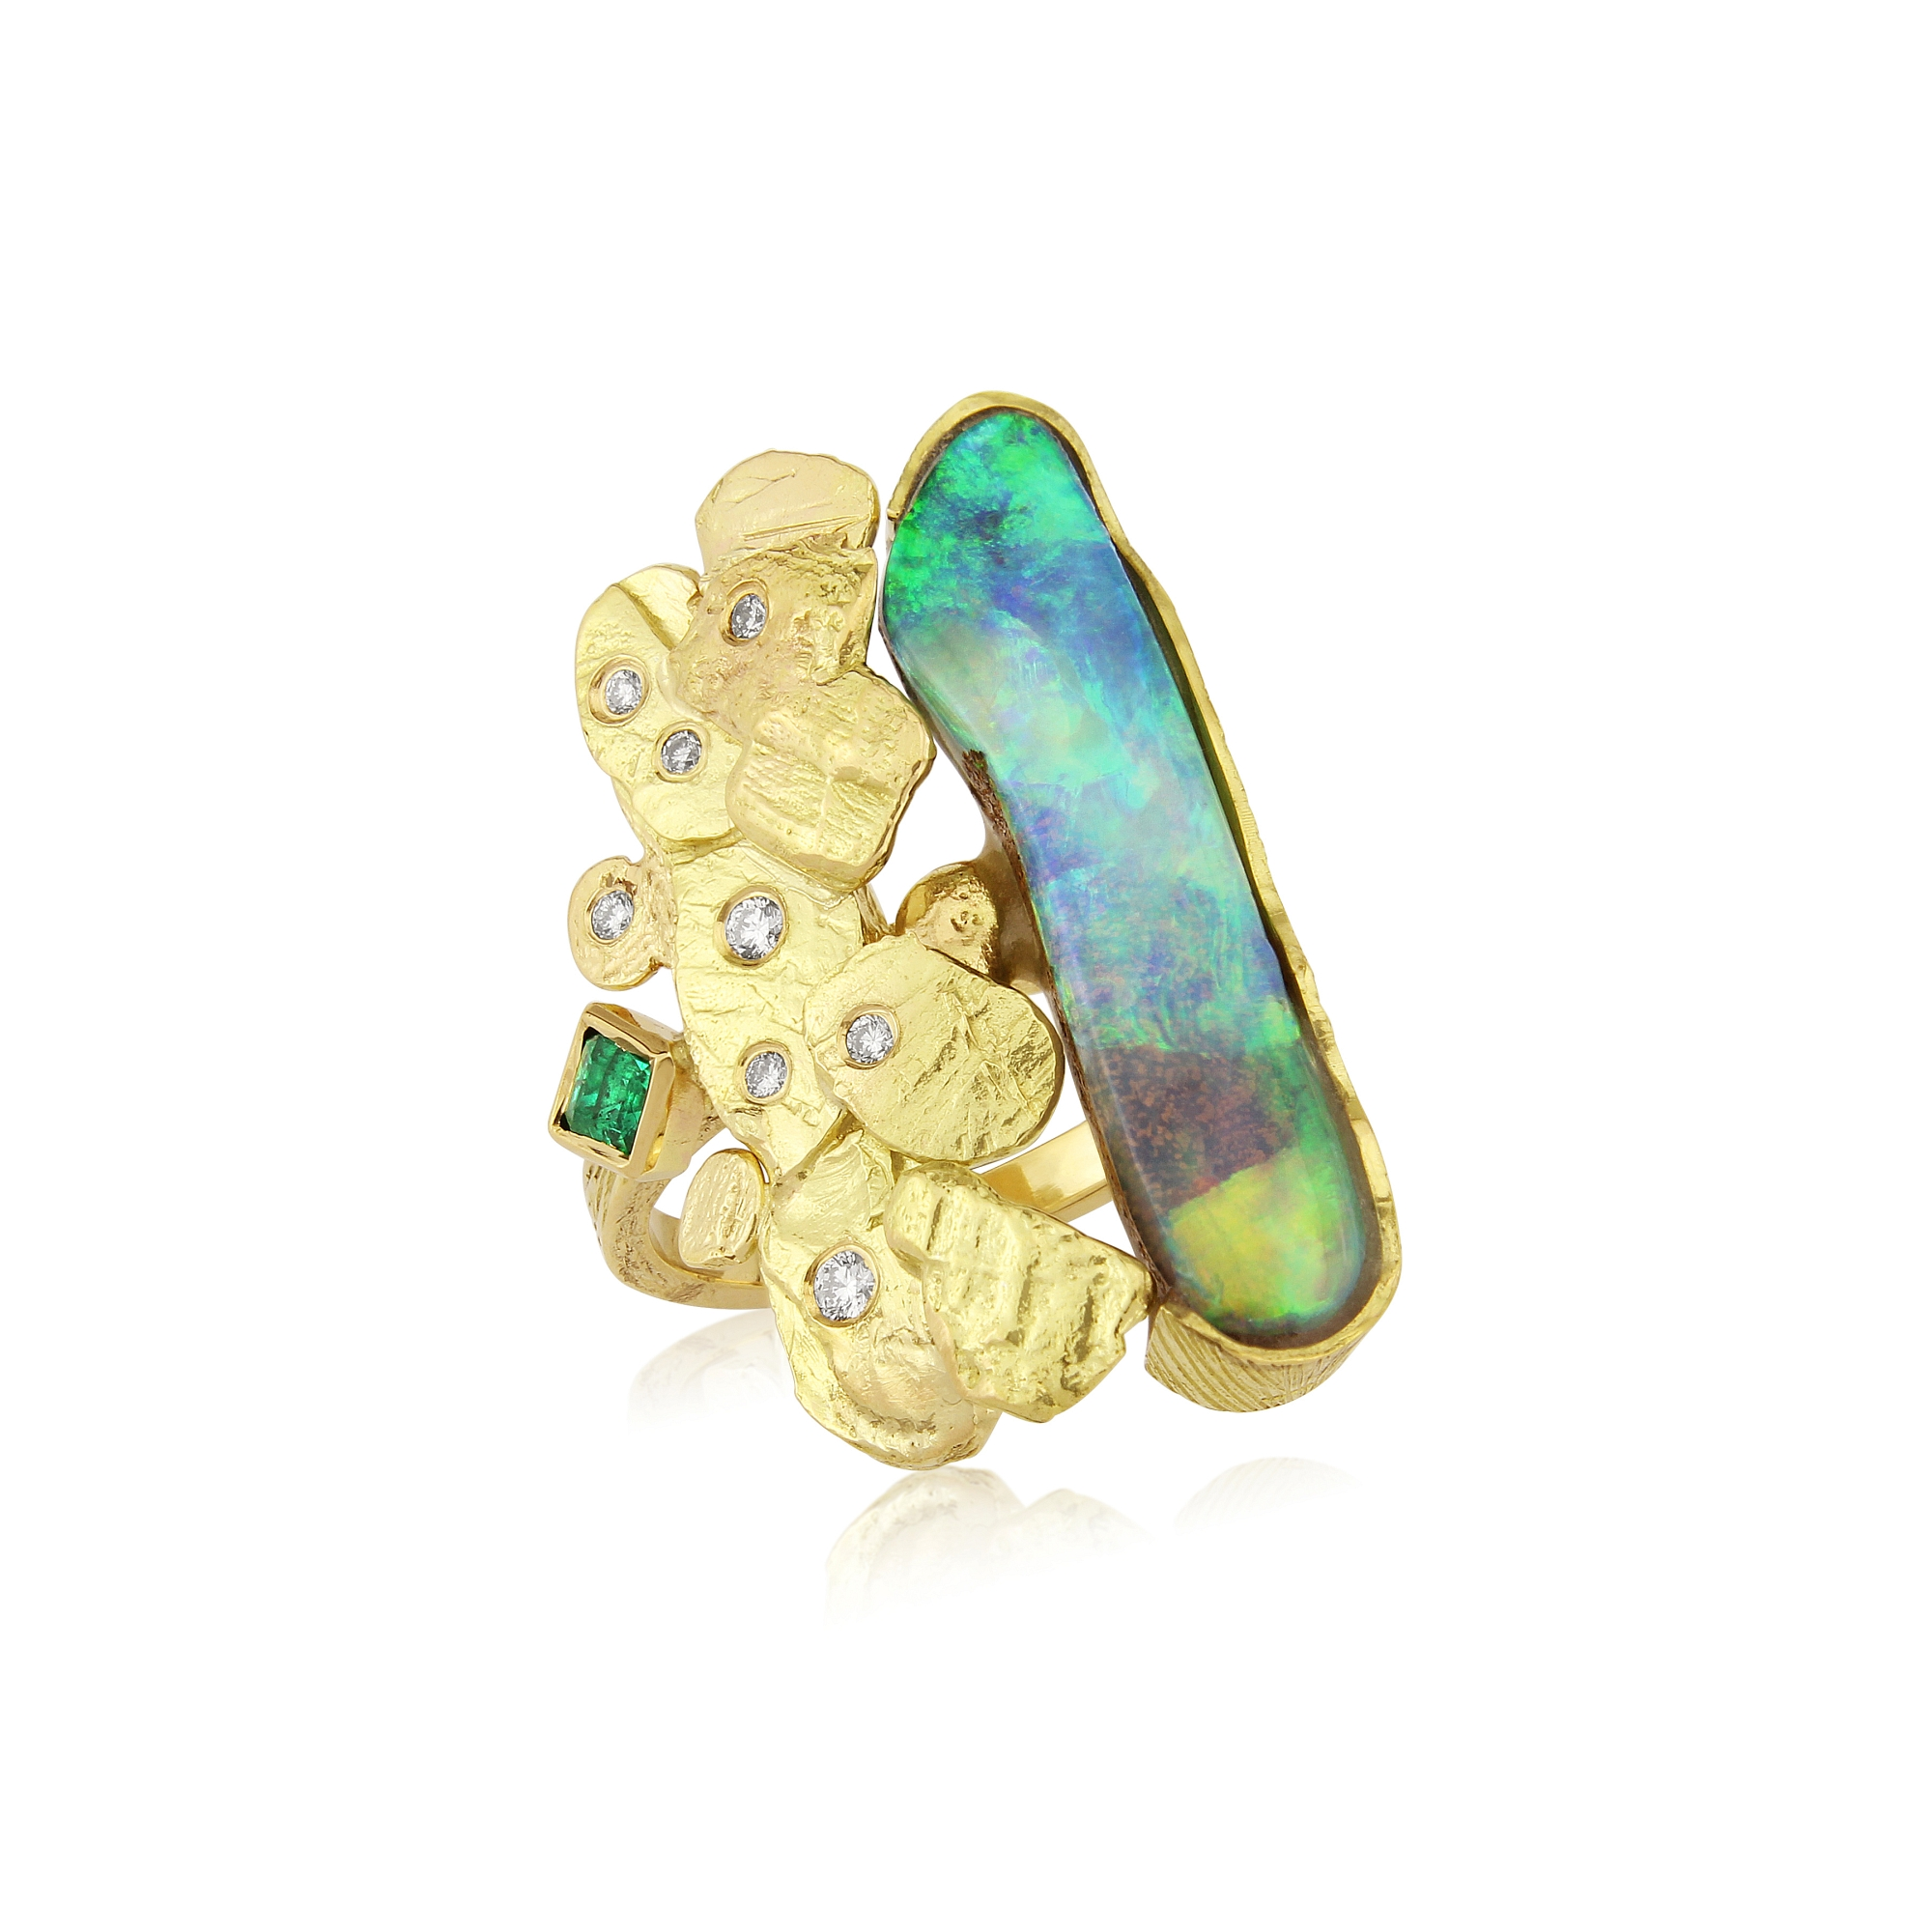 Australian boulder opal dress ring mounted in 18ct gold and set with Colombian emerald and diamonds.